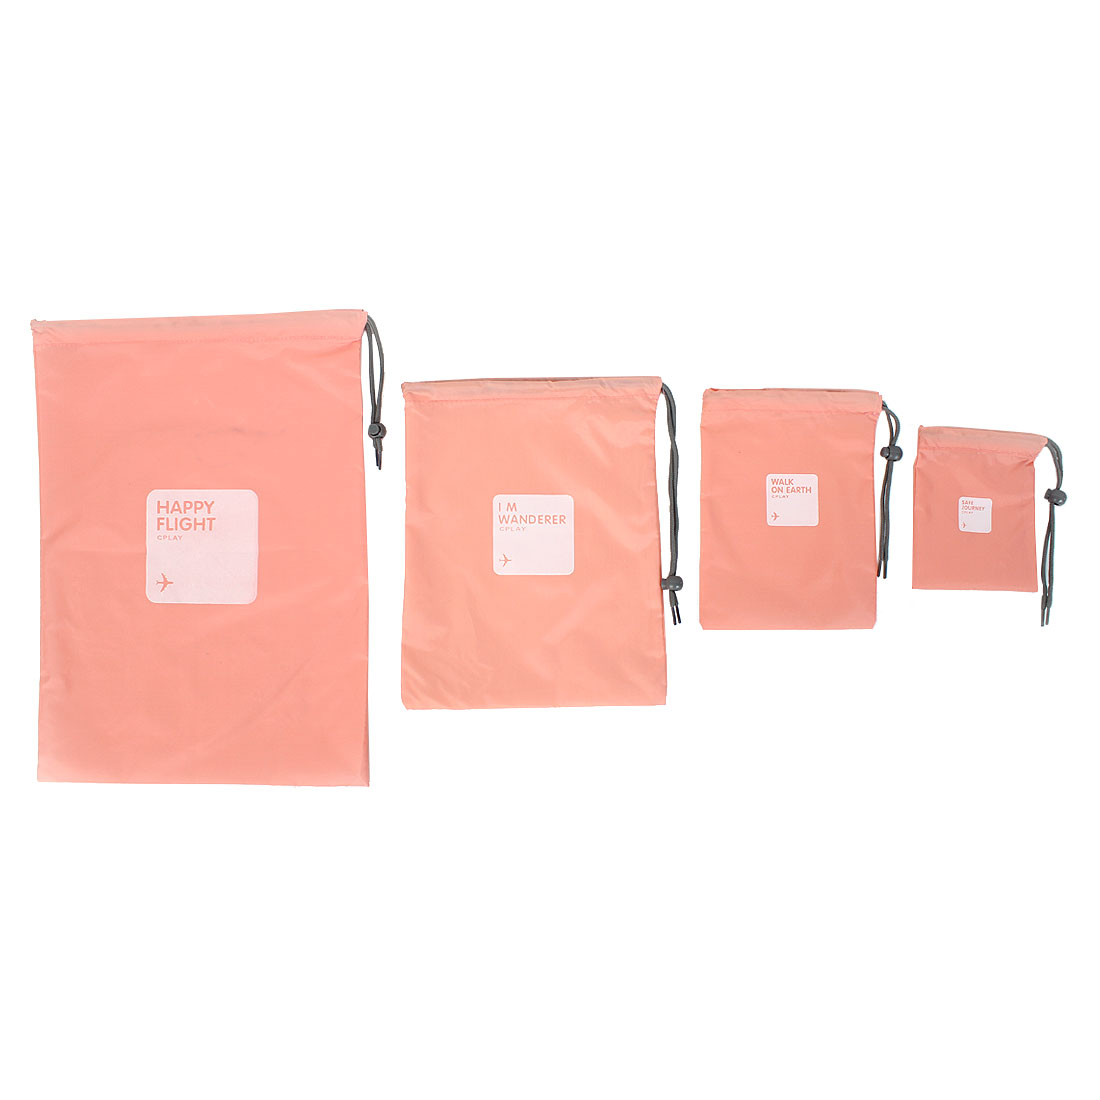 4 in 1 Travel Luggage Storage Organizer Packing Bags Drawstring Pouch Pink